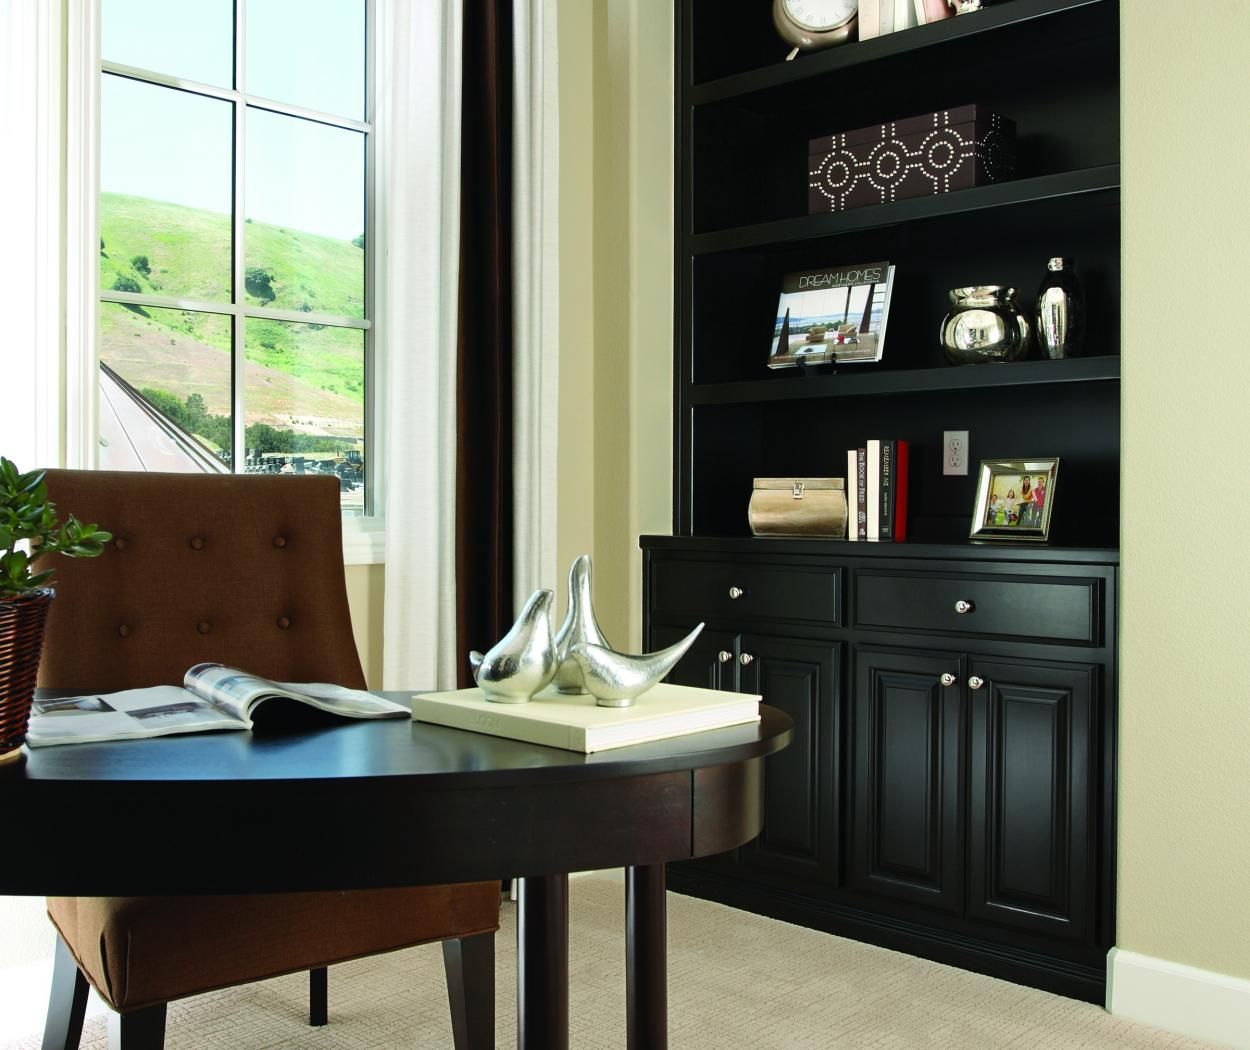 Beautiful Dark Espresso Stained Office Built-In with Open Shelves and Amerock Knobs